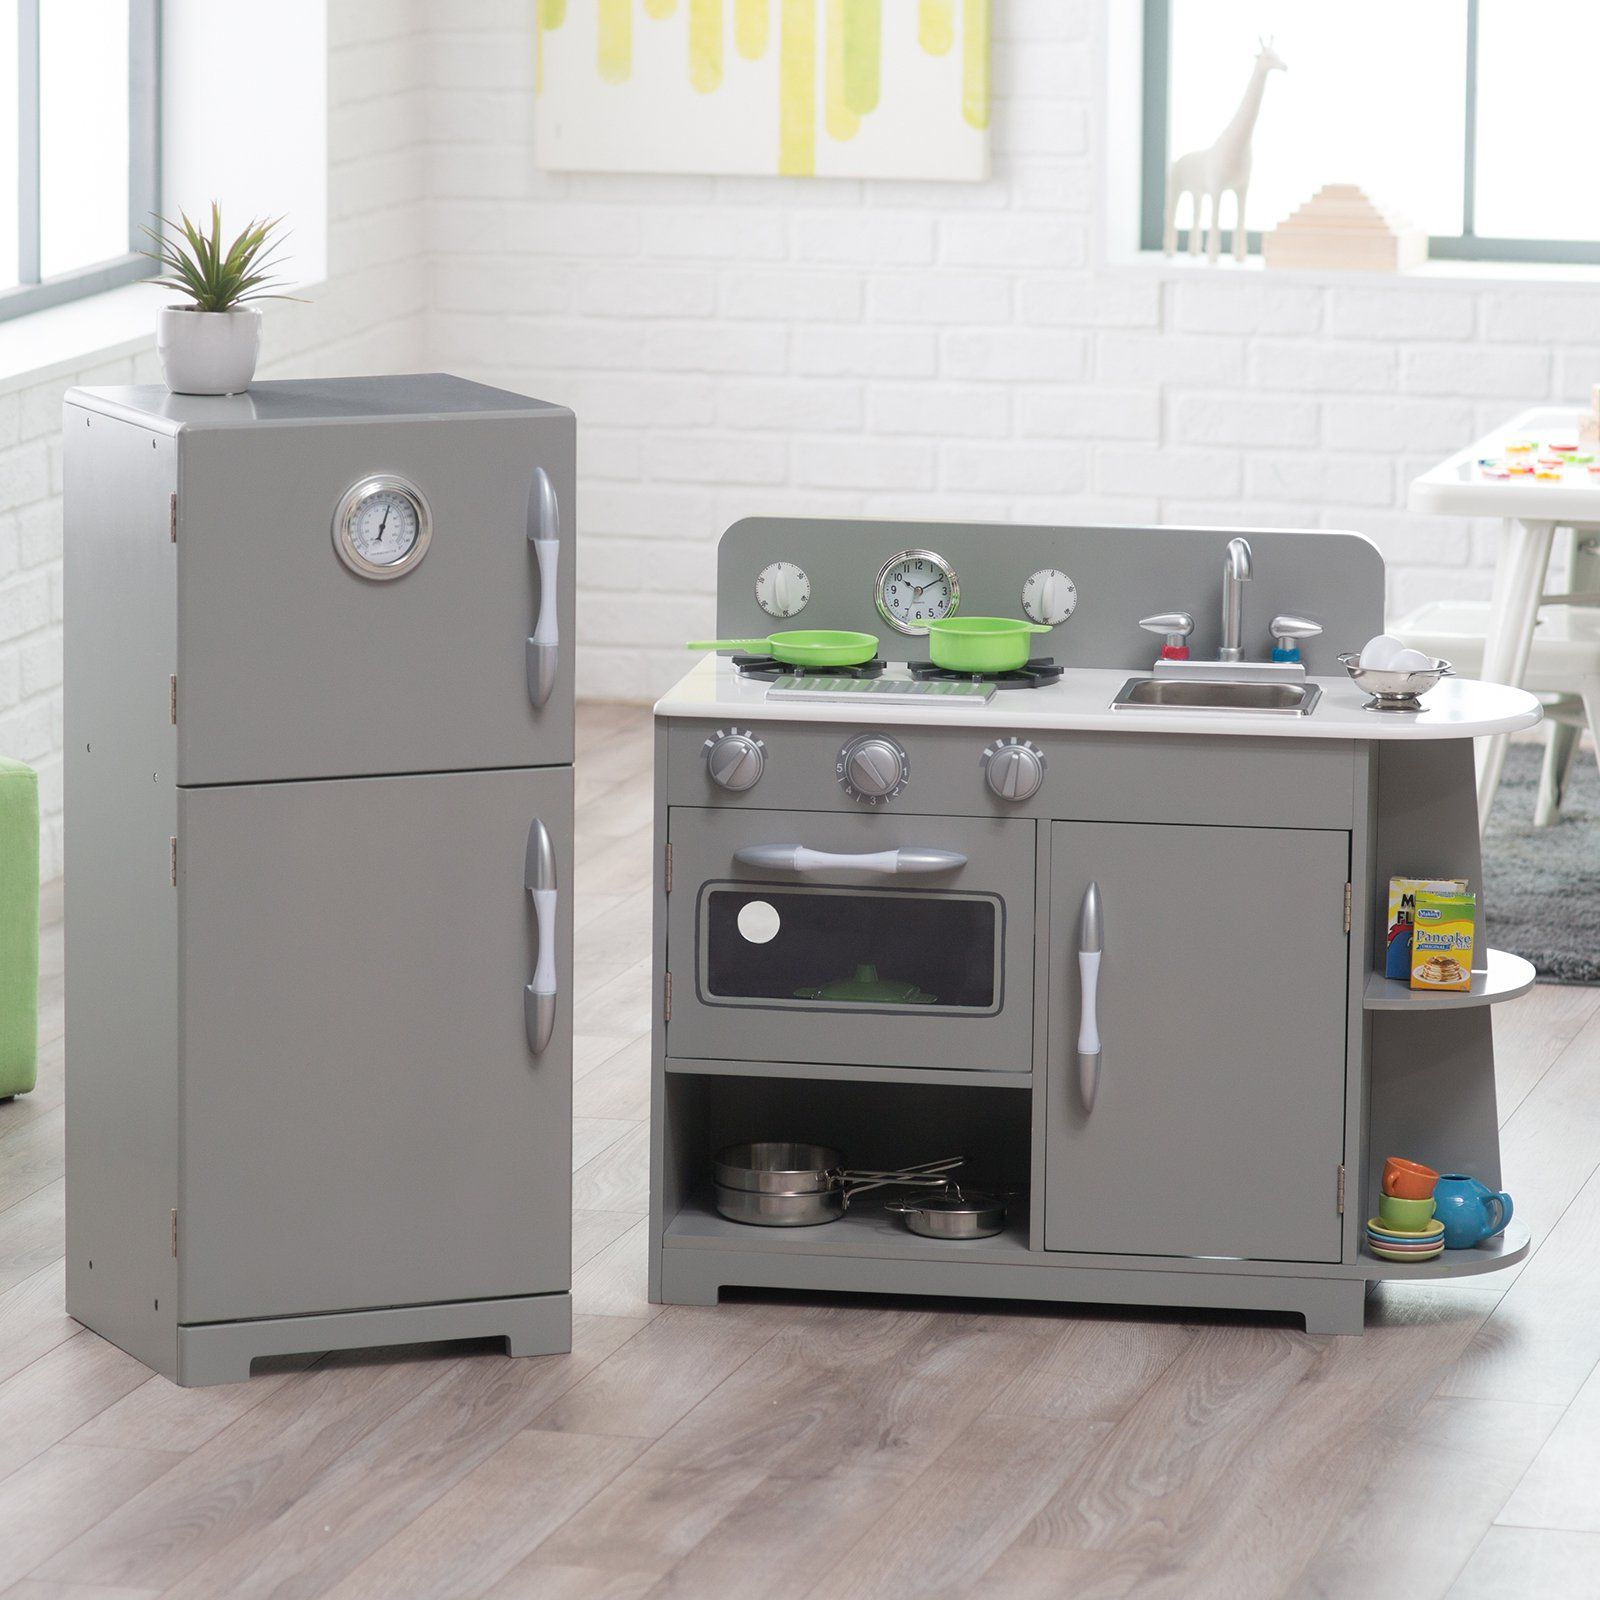 Classic wooden play kitchen set gray kids can cook up lots of creativity with the teamson kids 2 pc classic wooden play kitchen set gray